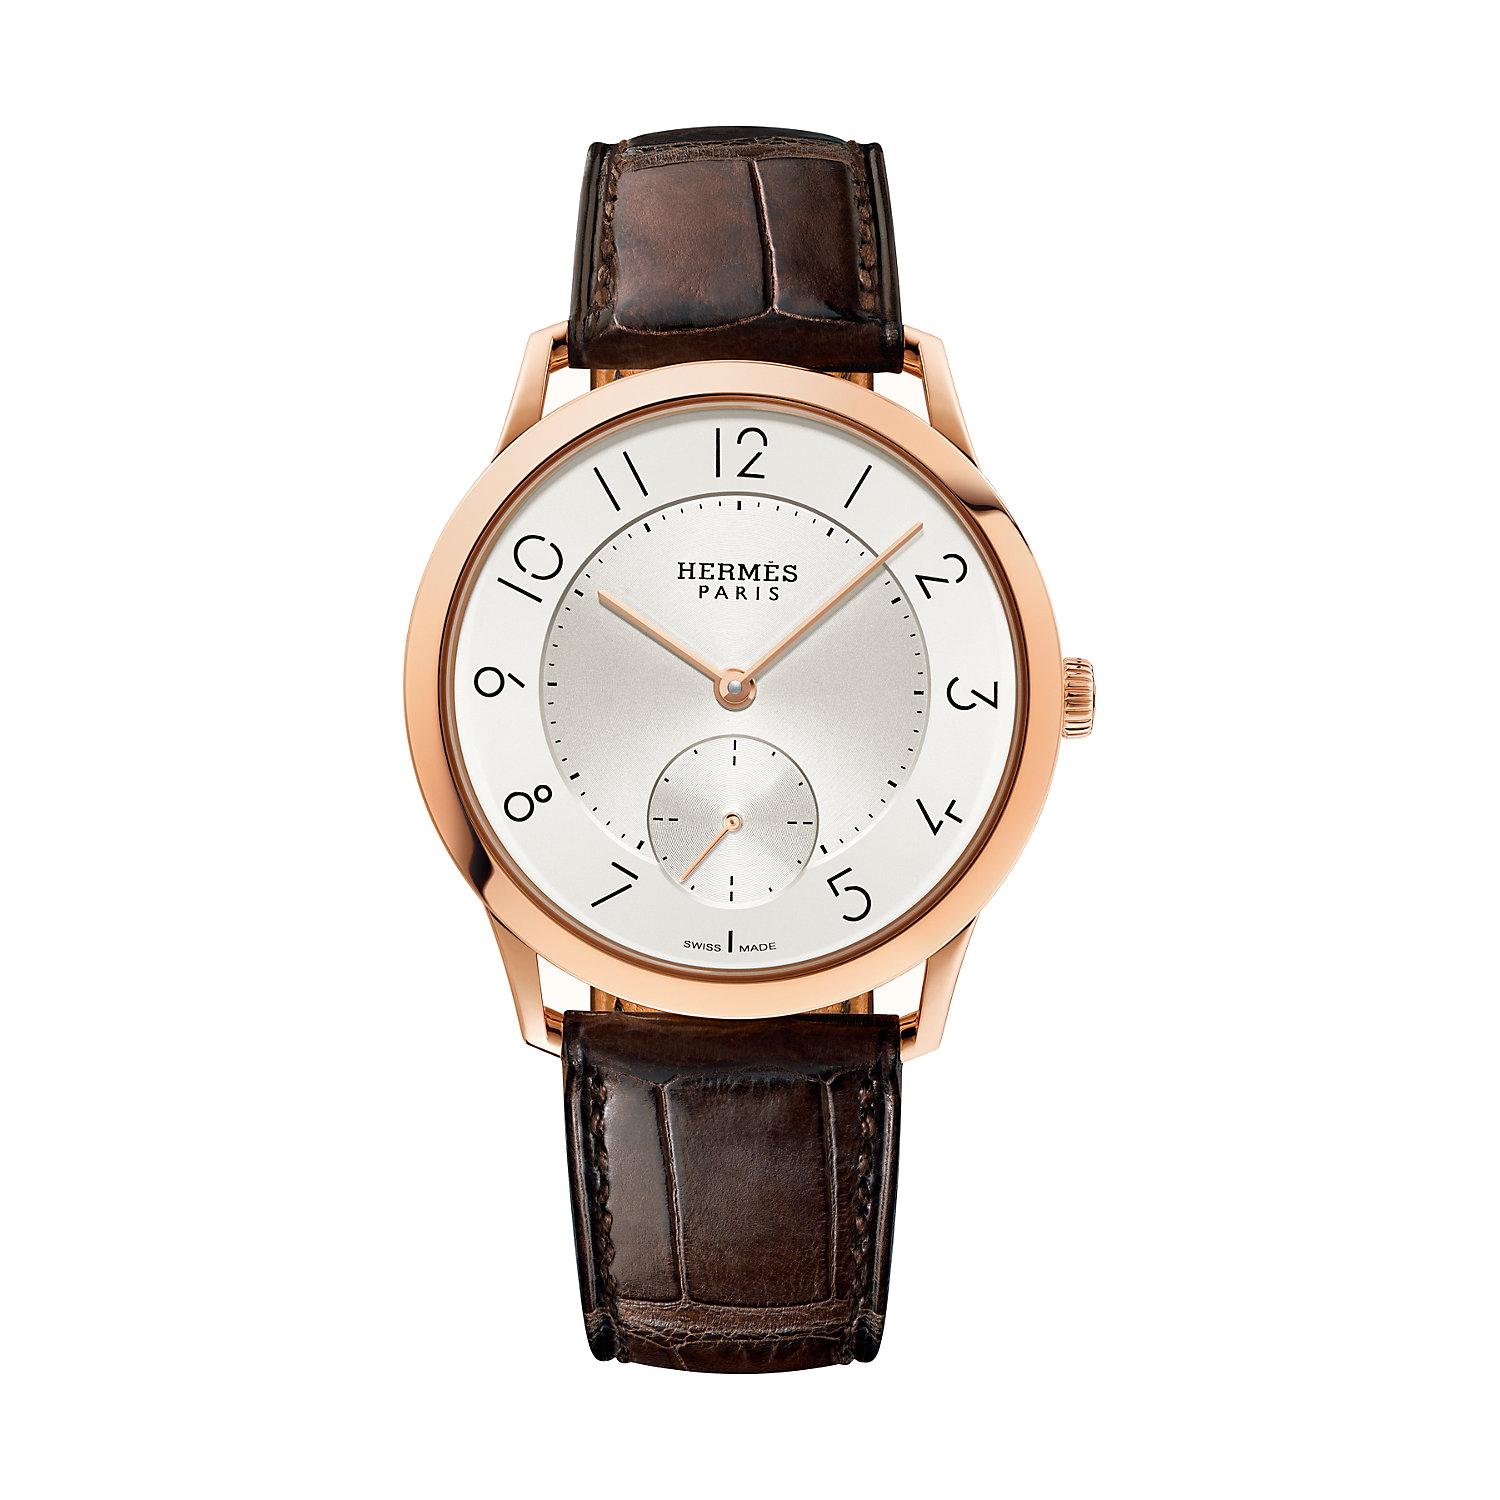 Hermès-slim-d-hermes-395mm-Hall-of-Time-041762WW00